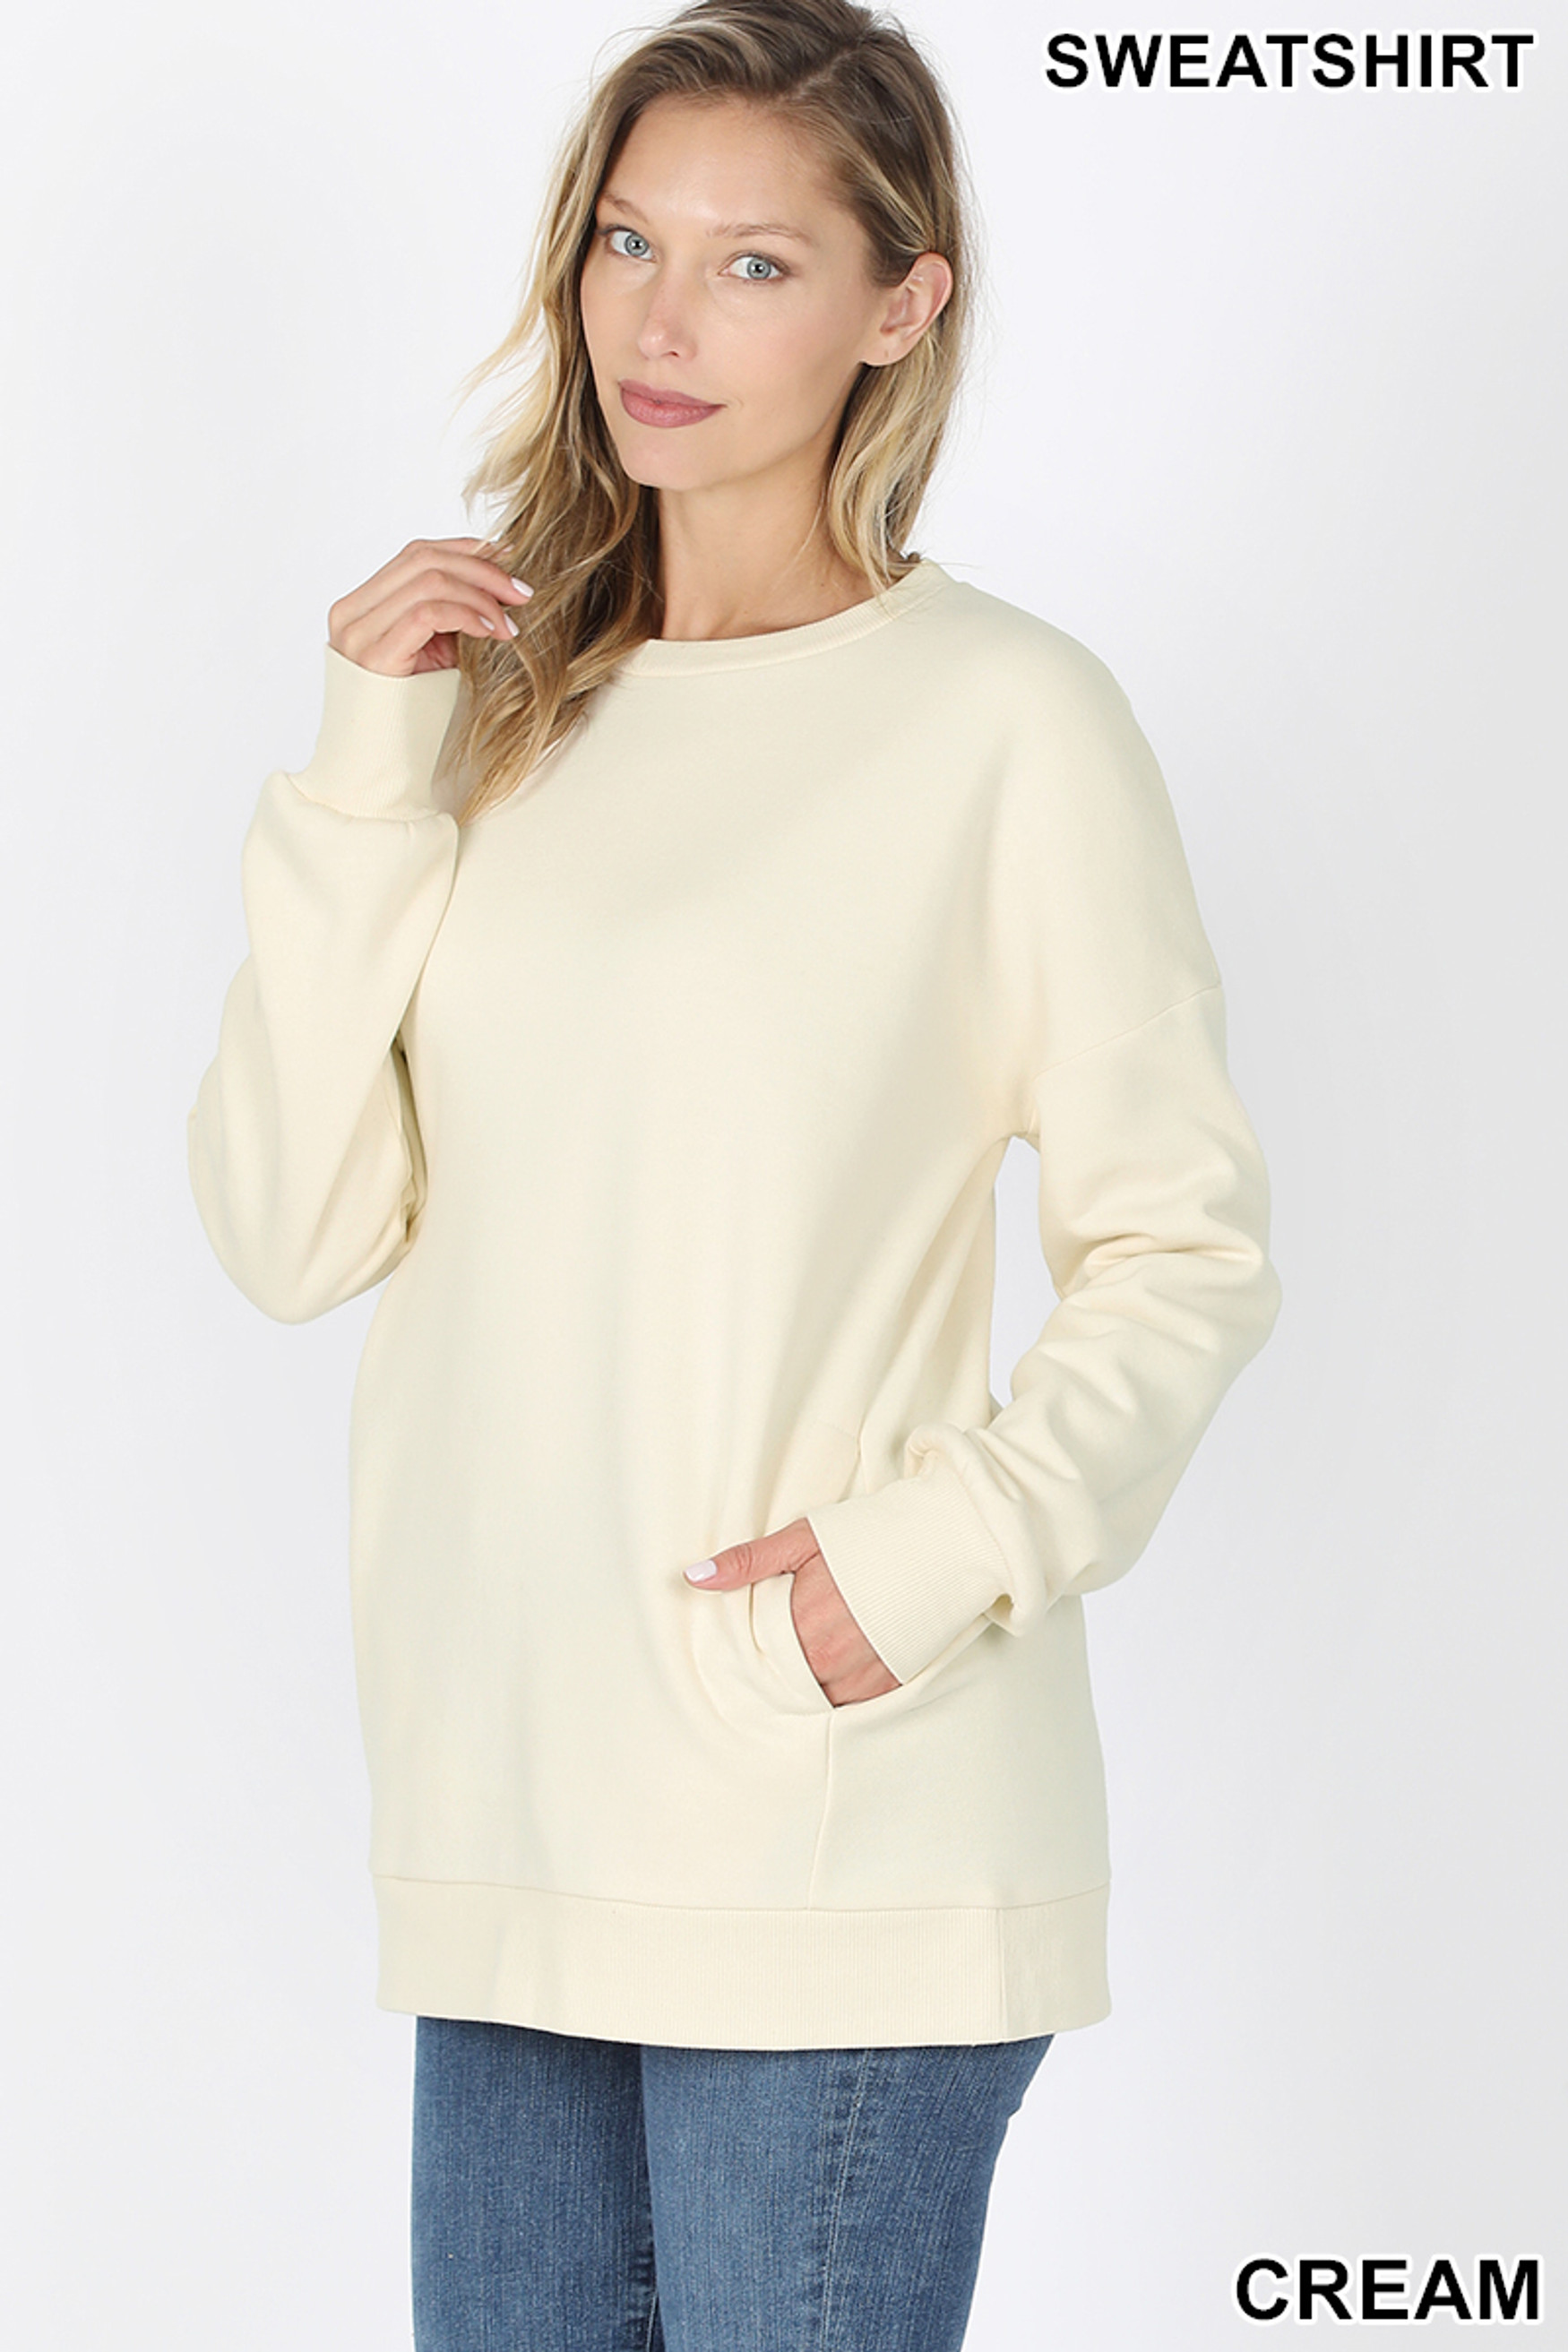 Slightly turned image of Cream Round Crew Neck Sweatshirt with Side Pockets